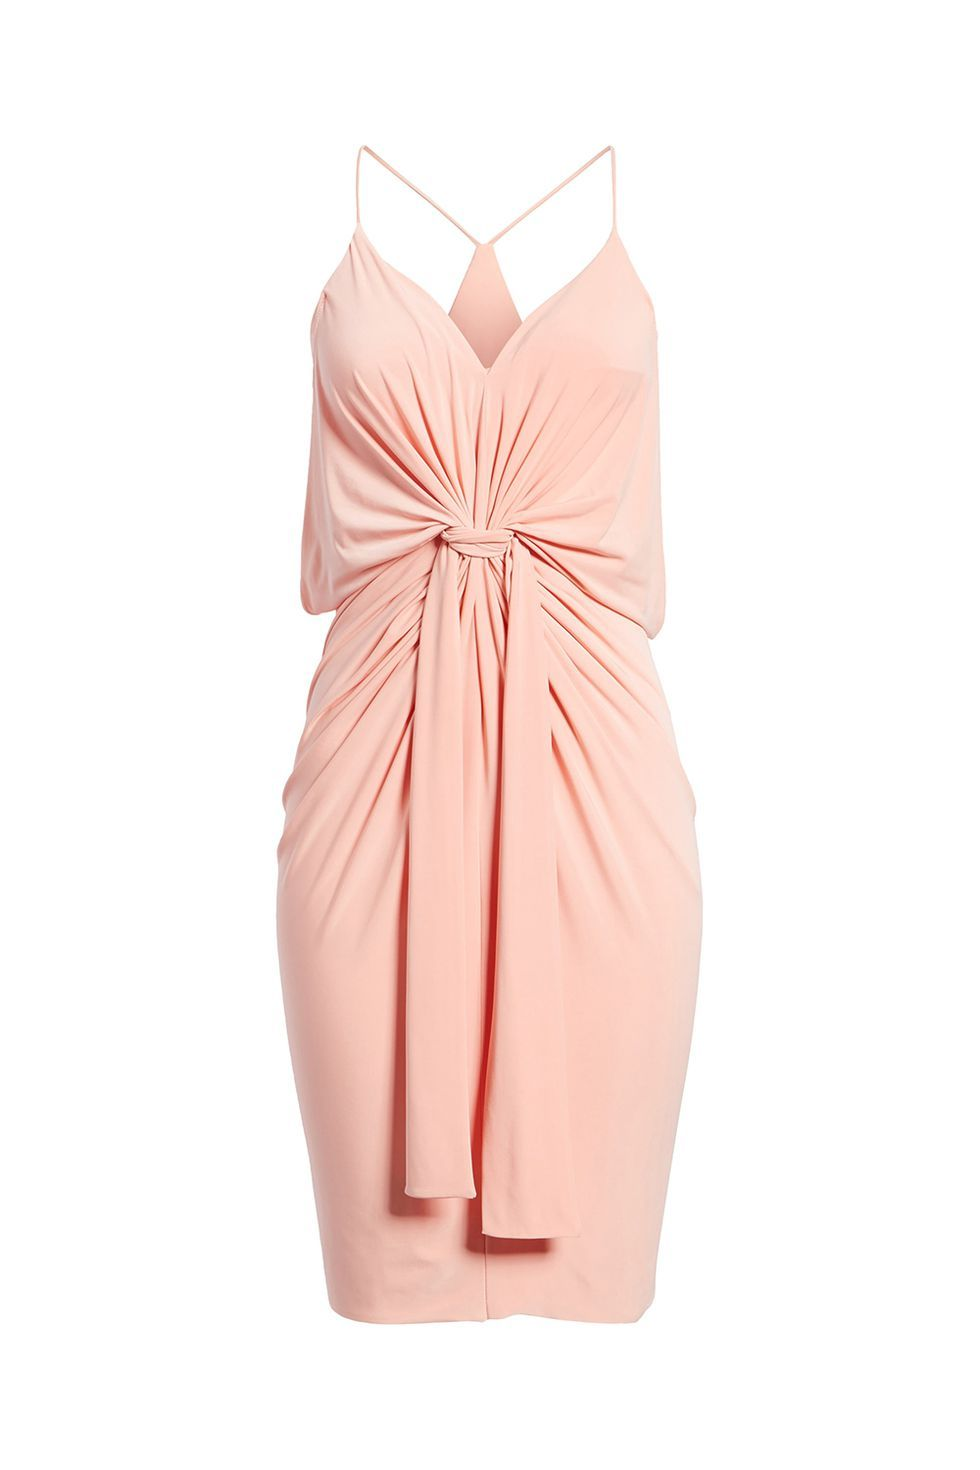 11 Cocktail Dresses That Are Ideal For A Semi Formal Summer Wedding Wedding Attire Guest Guest Attire Cocktail Dress Wedding [ 1470 x 980 Pixel ]